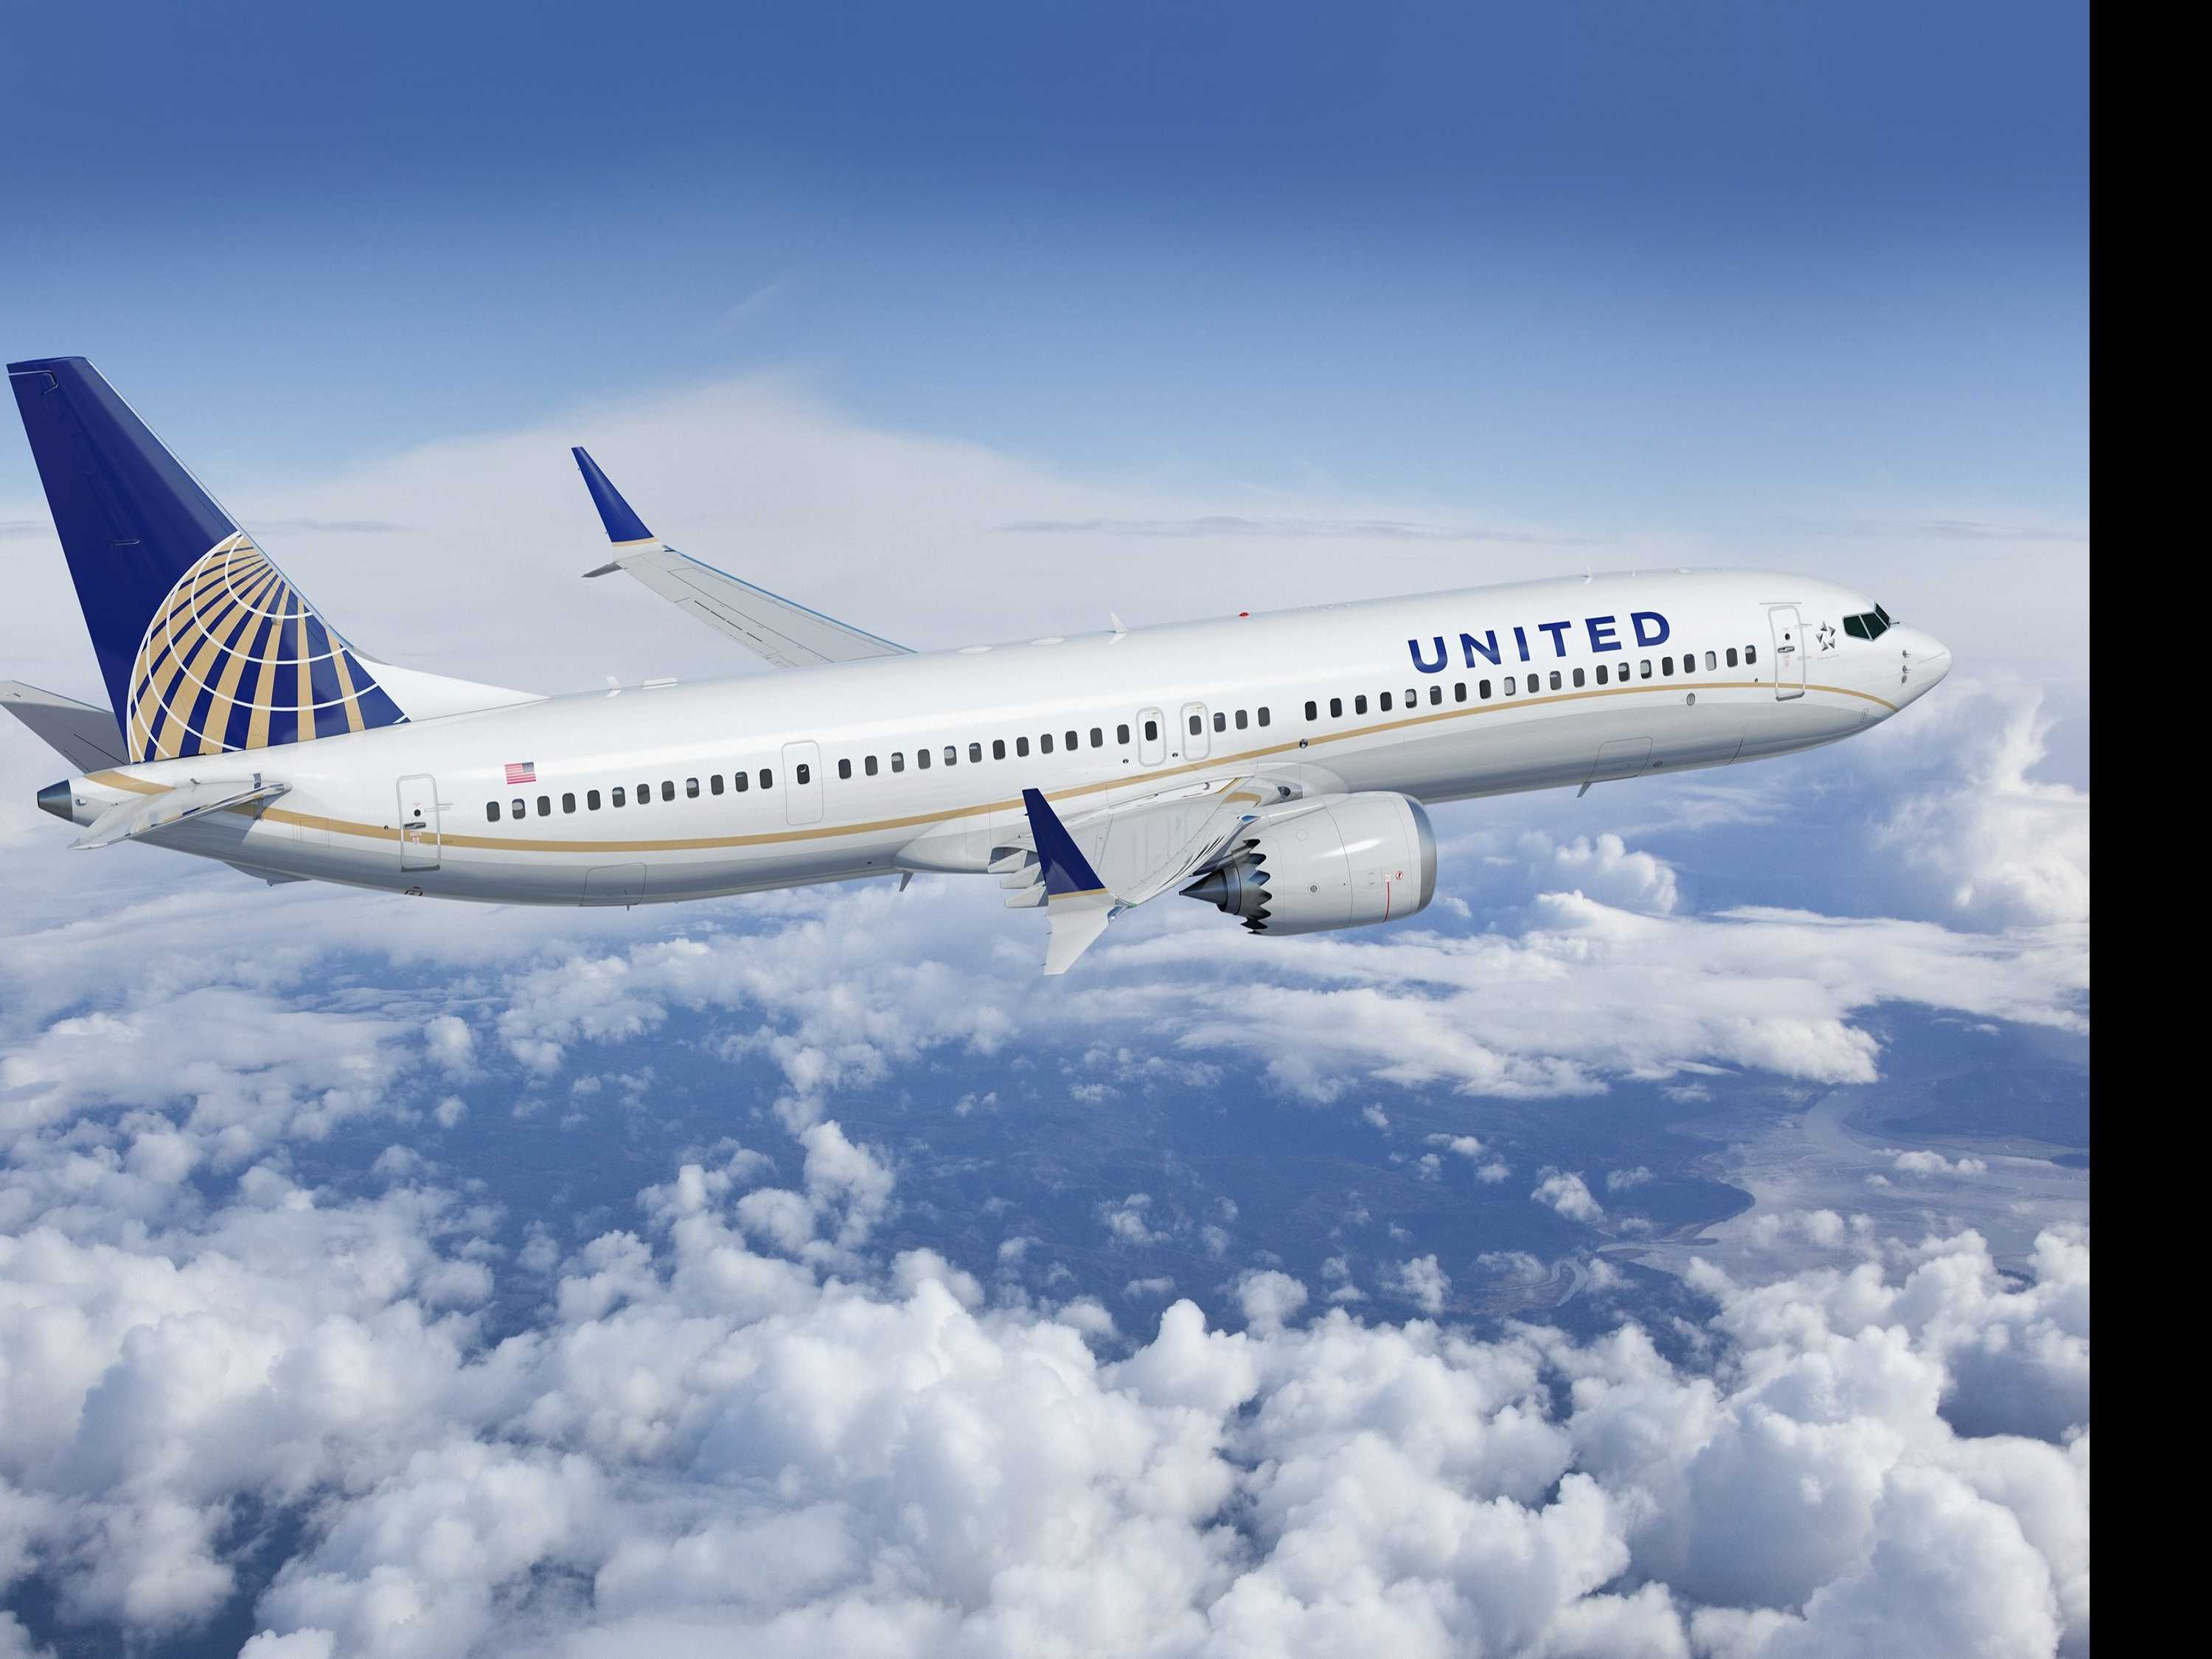 United Airlines Agent Charged After Racial Slur Accusation